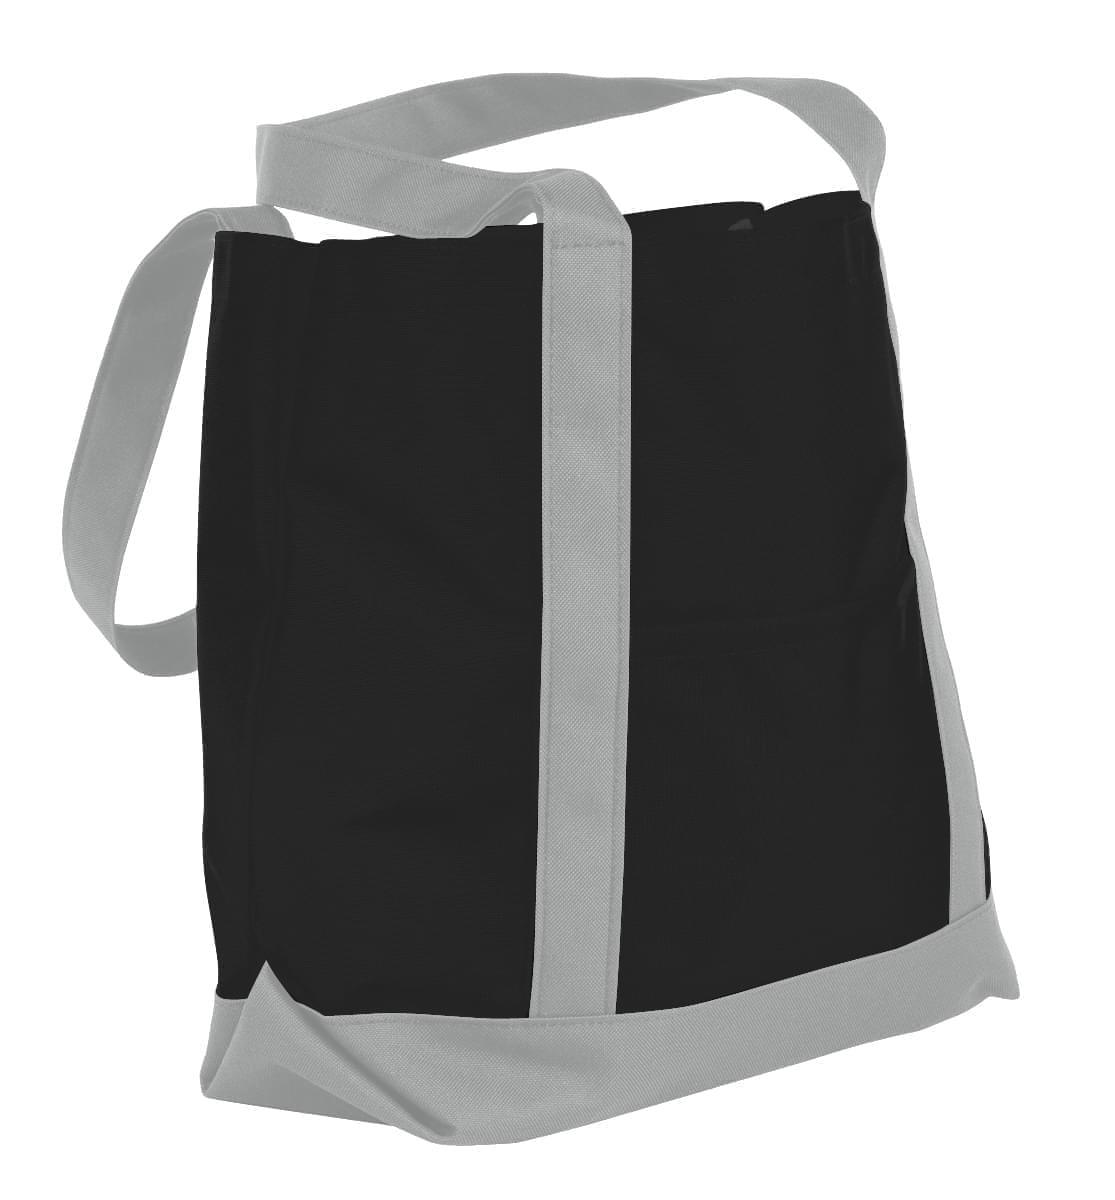 USA Made Nylon Poly Boat Tote Bags, Black-Grey, XAACL1UAON